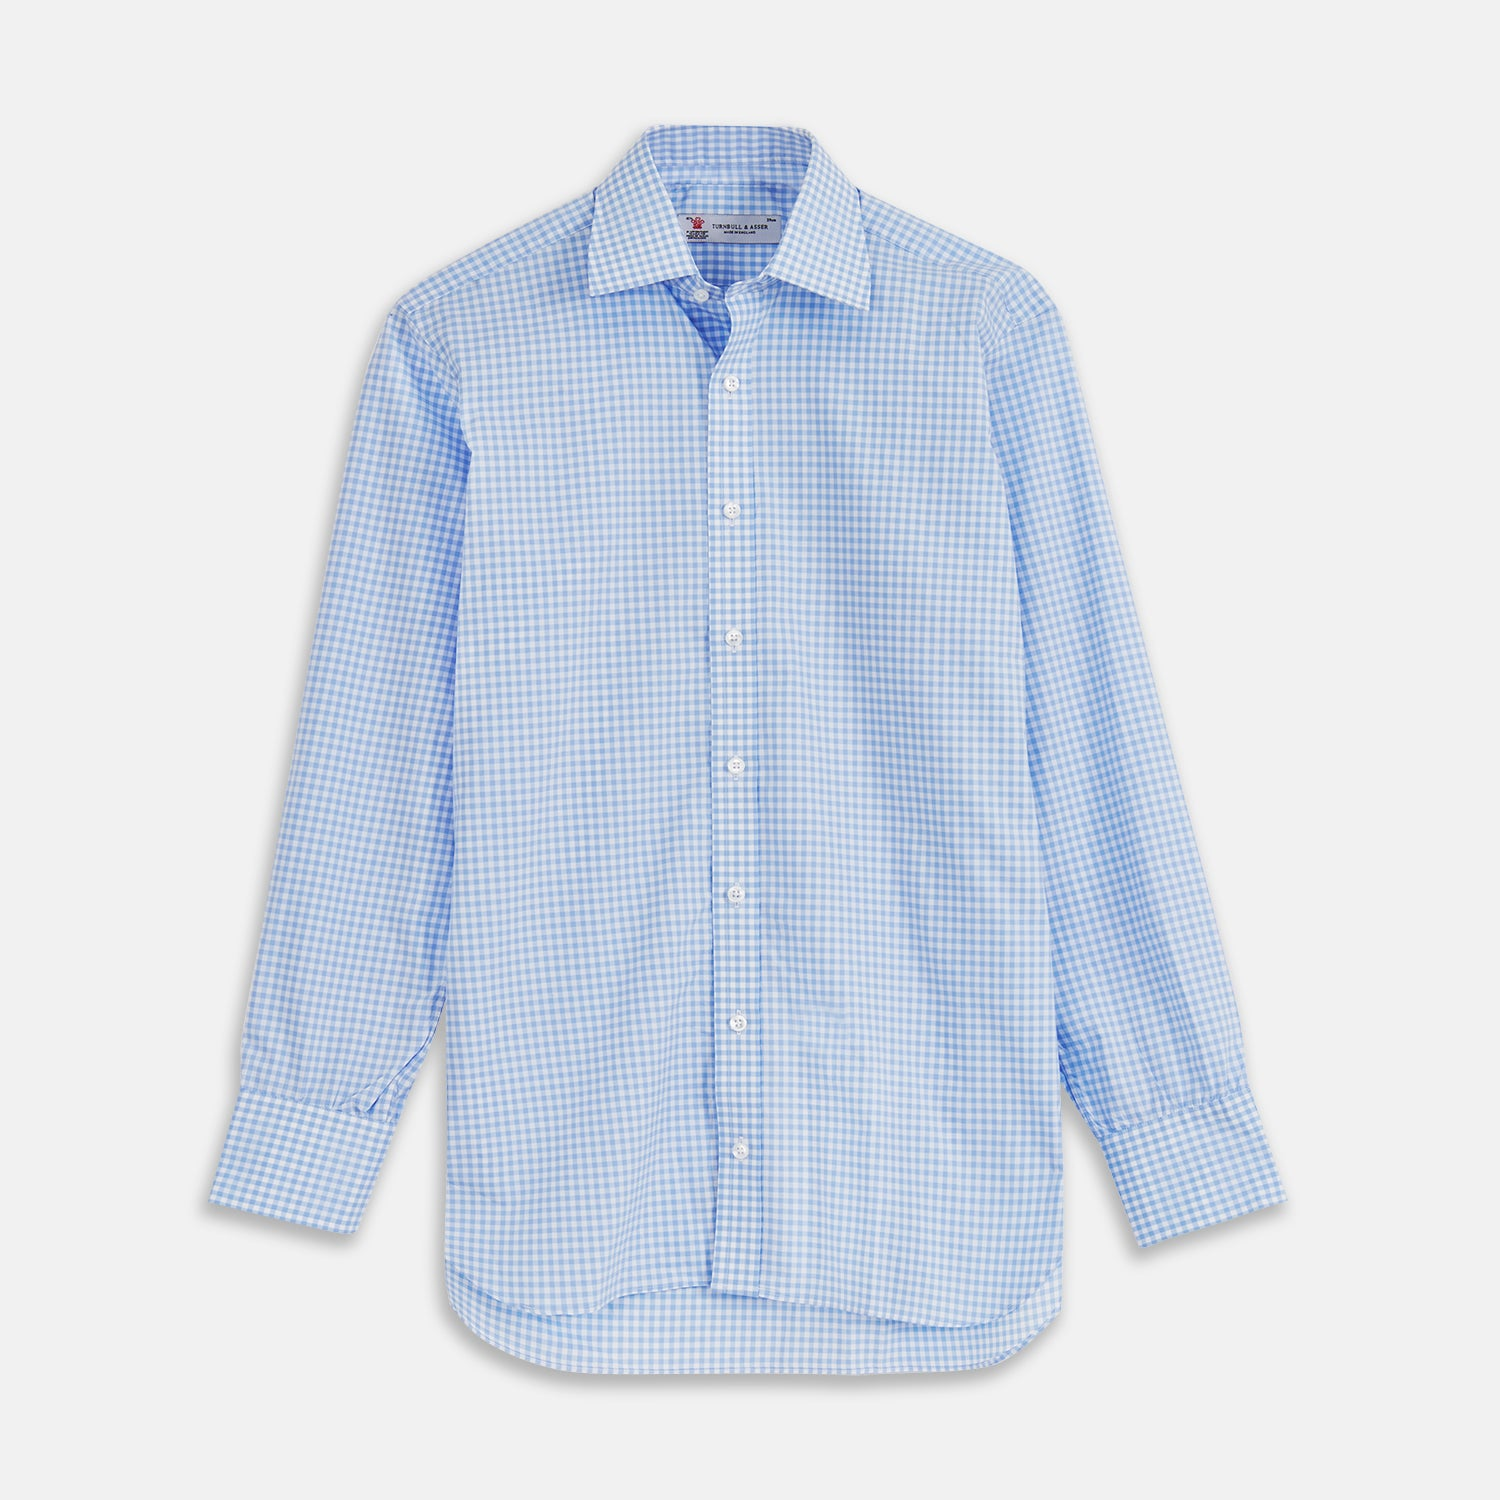 Blue & White Cotton Gingham Check Shirt with T&A Collar and 3-Button Cuffs - 18.5 from Turnbull & Asser